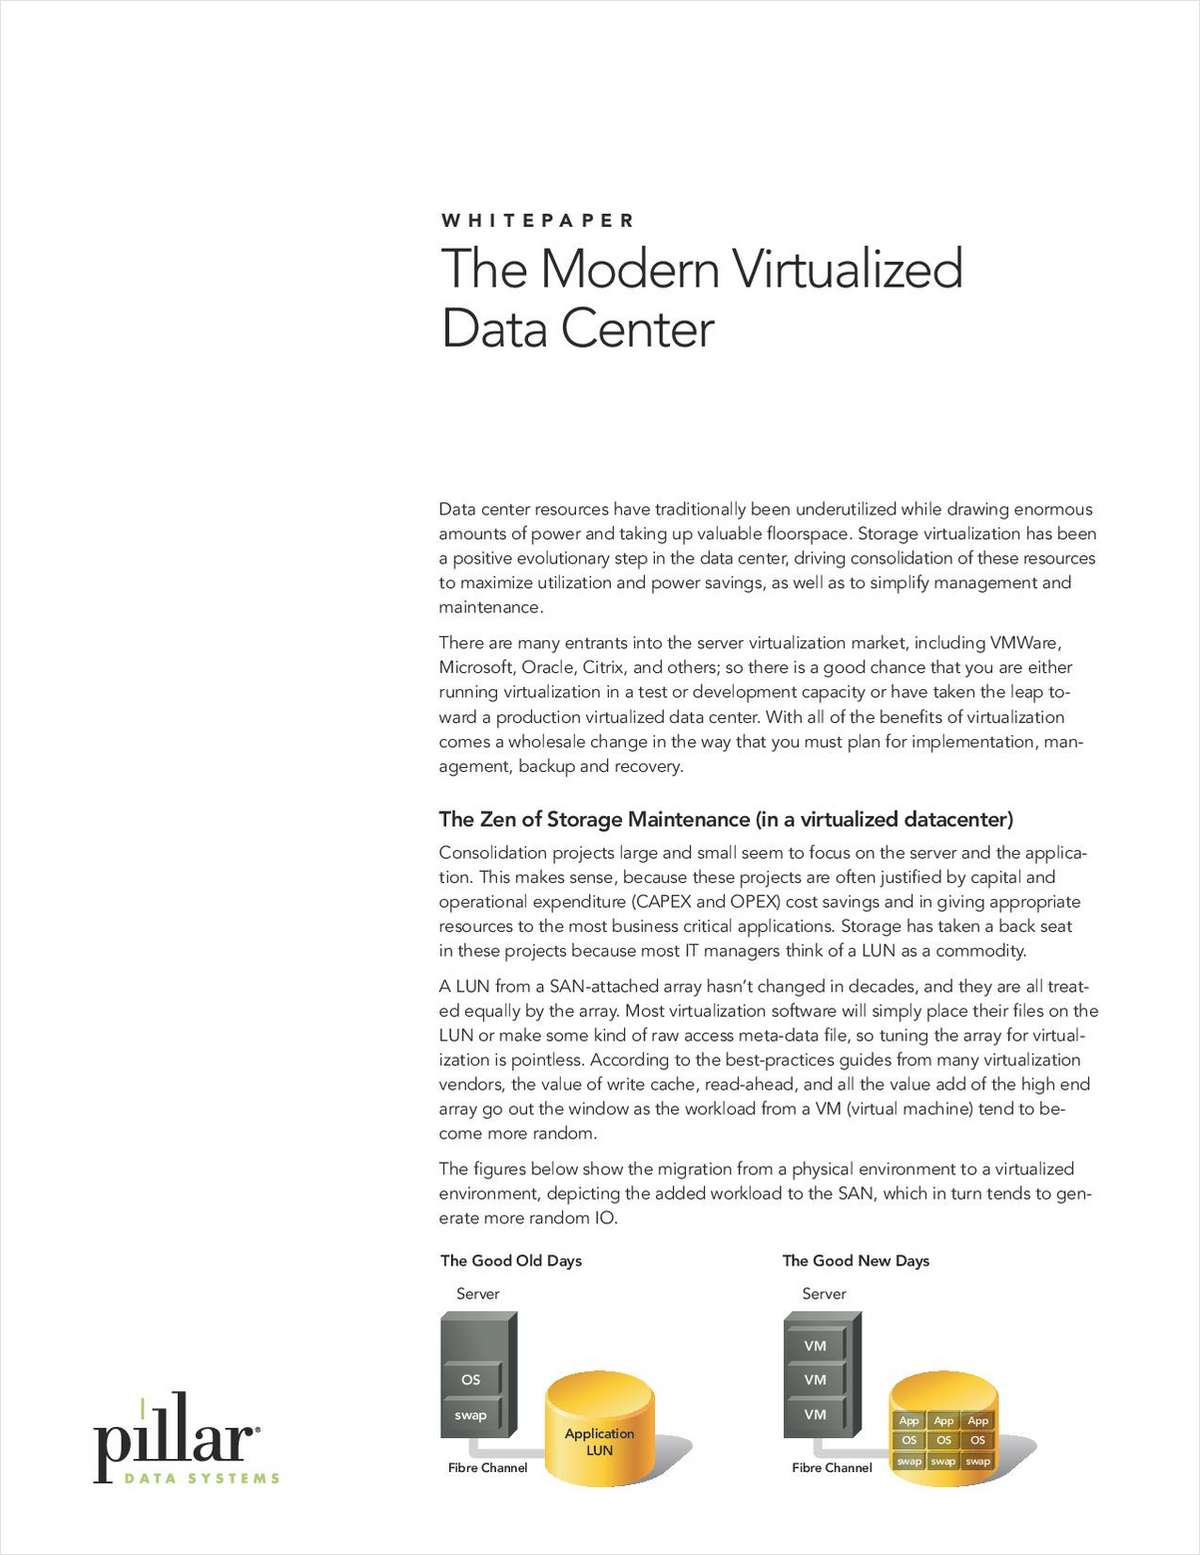 The Modern Virtualized Data Center